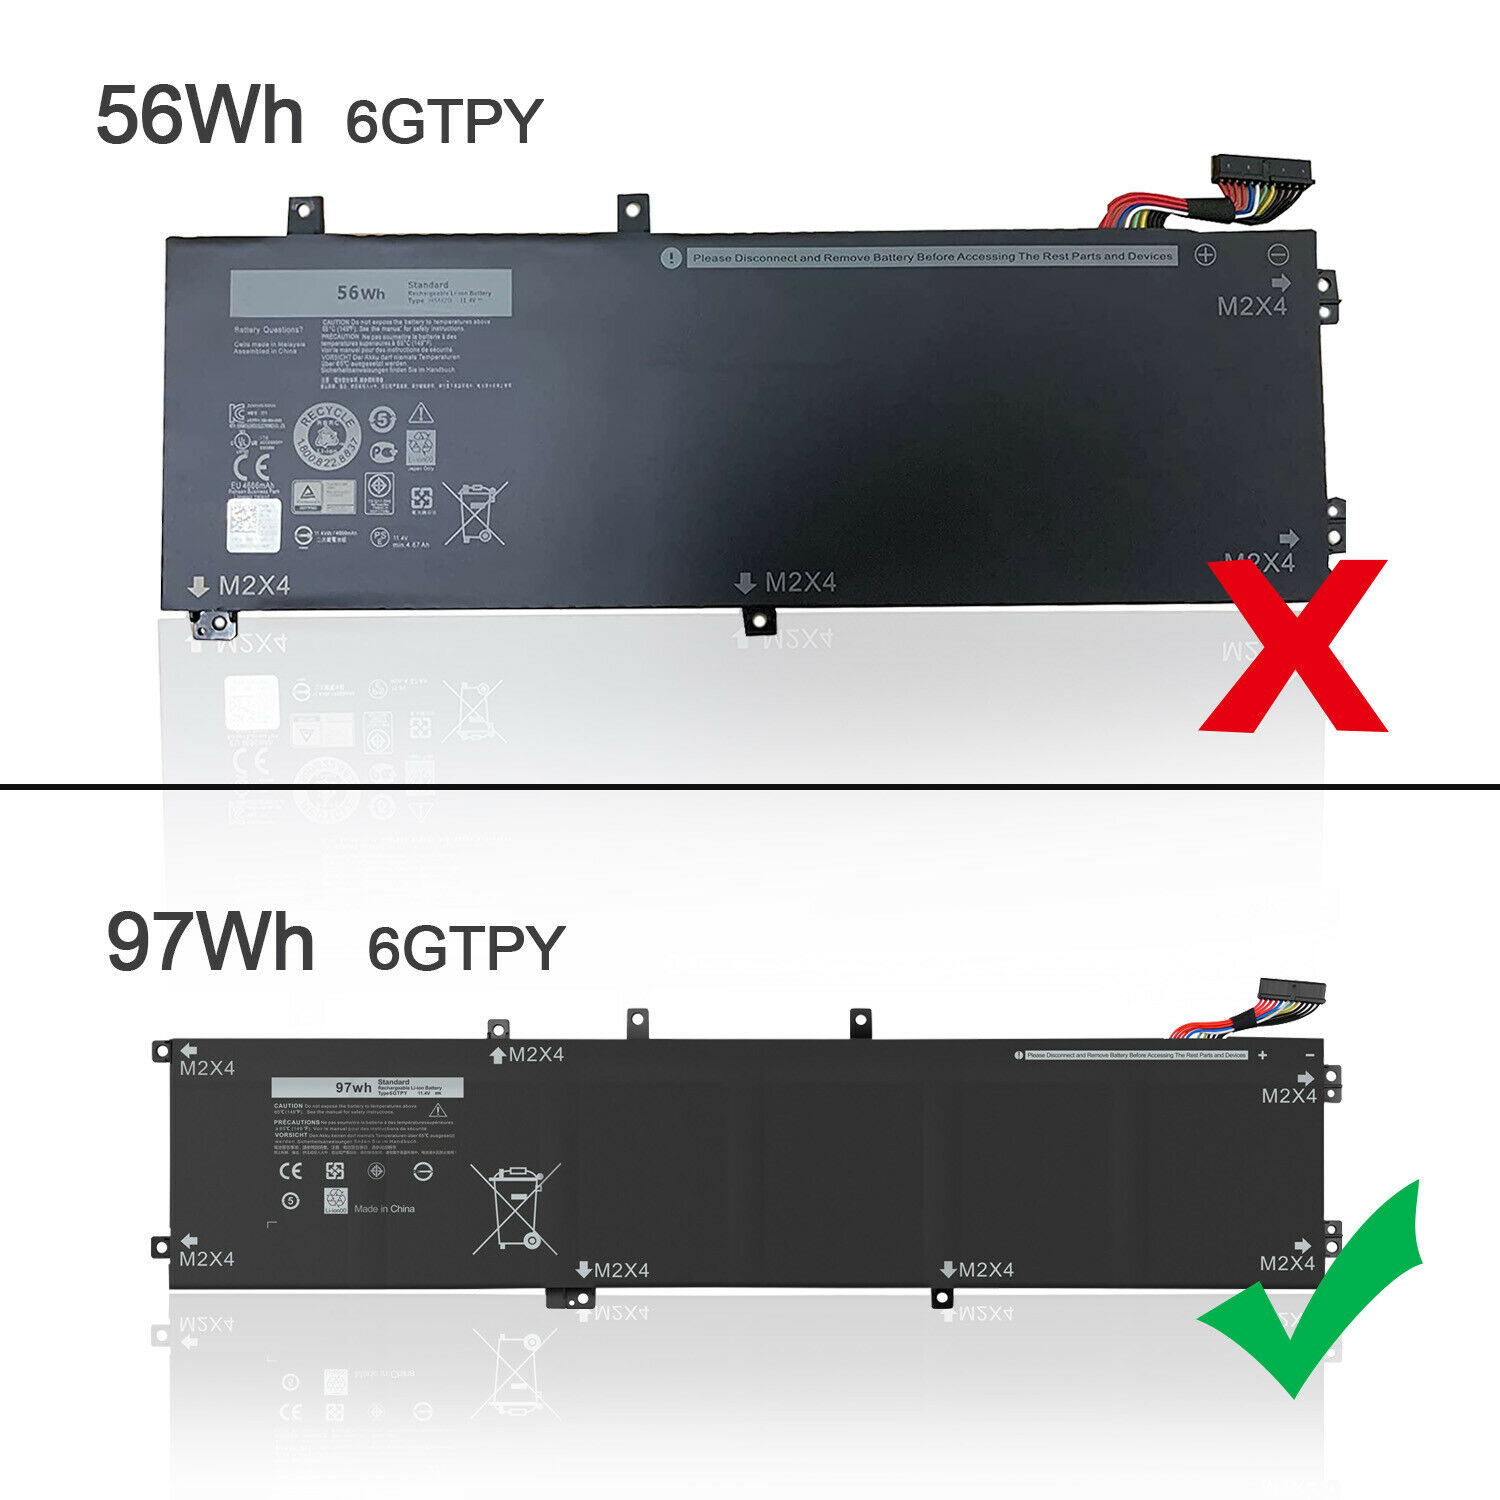 6GTPY Laptop Battery 11.4V 97Wh For Dell XPS 15 9570 9560 9550 7590 5XJ28 5D91C - $45.88